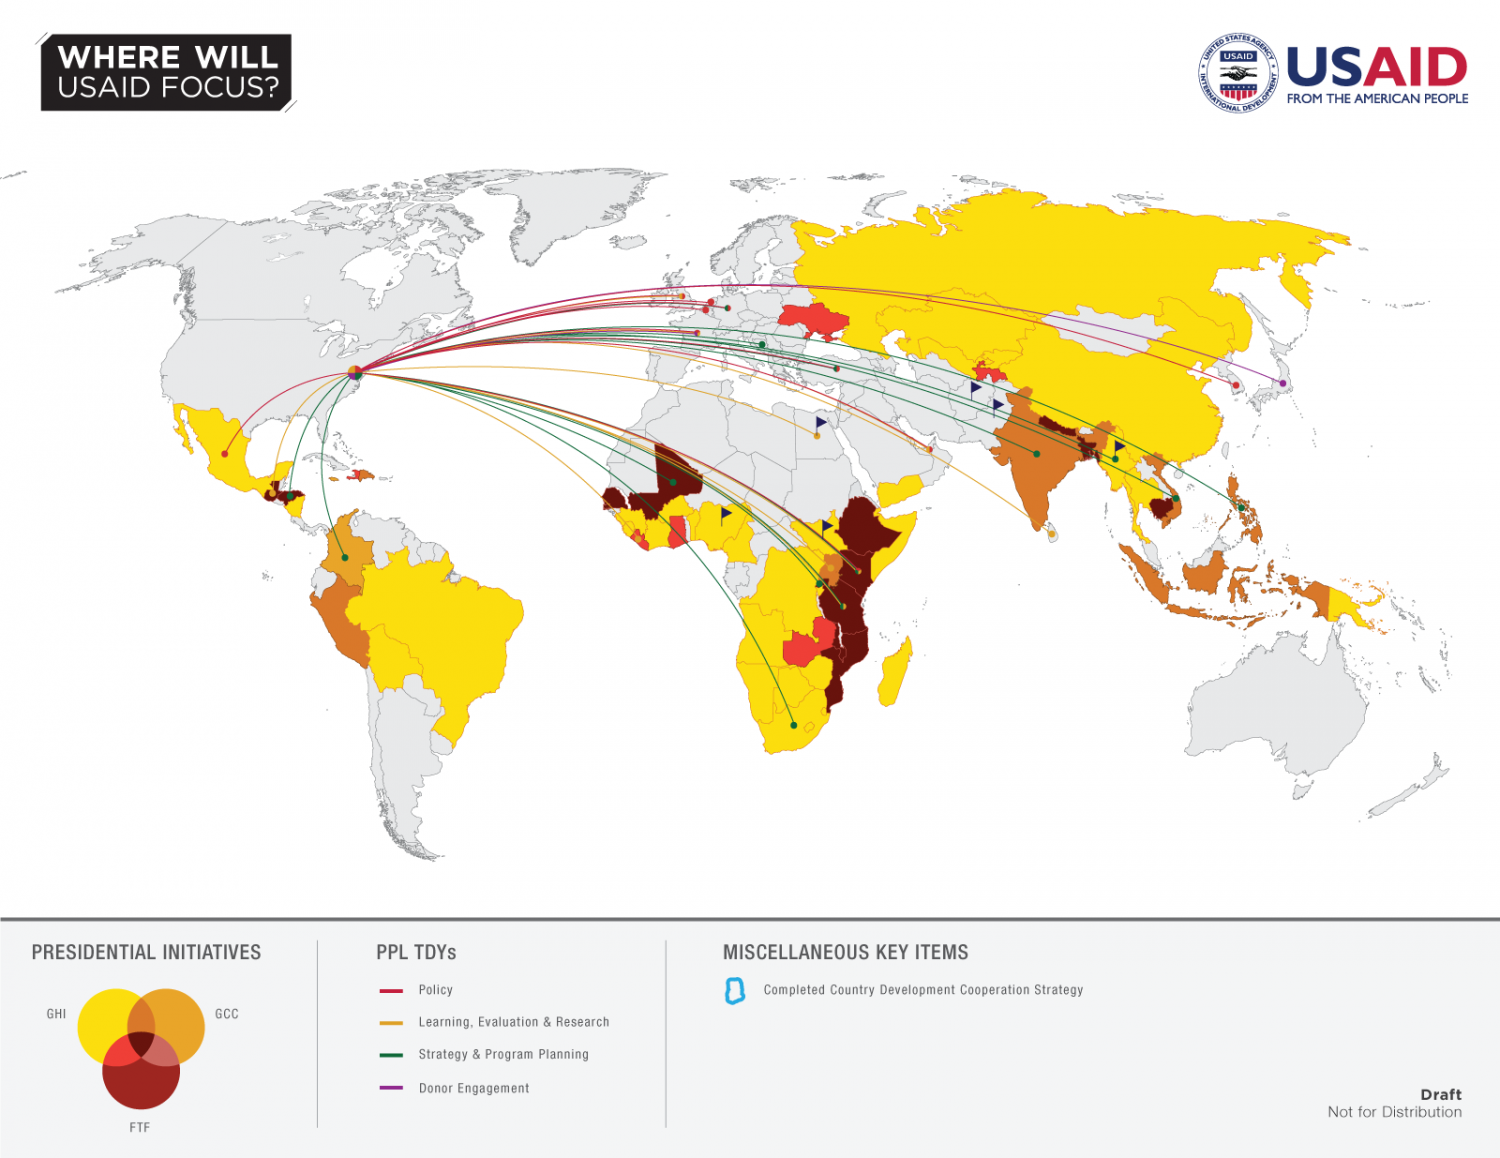 USAID Focus - Presidential Initiatives Infographic